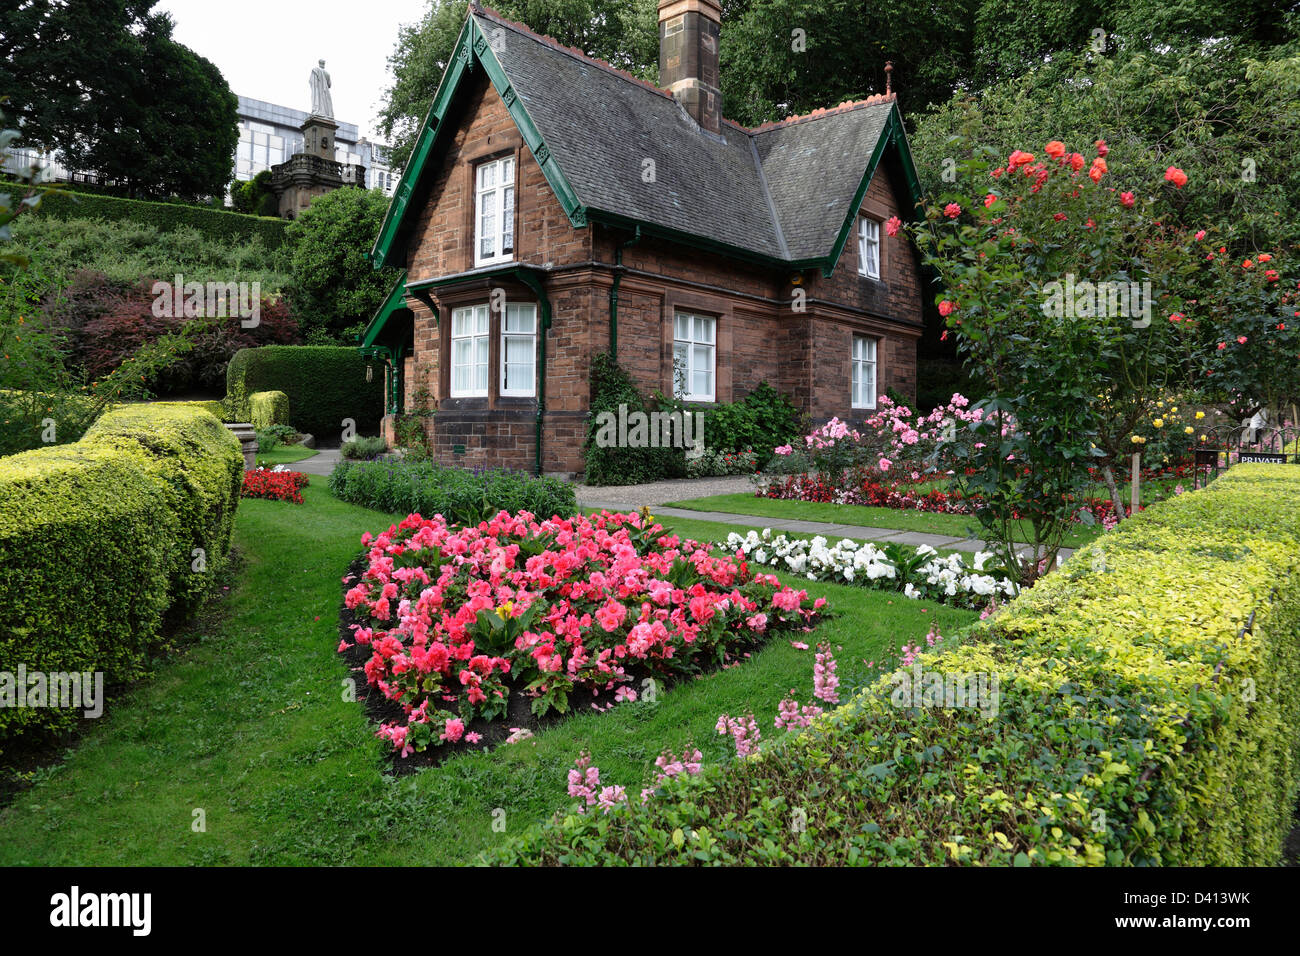 The Park Rangers Cottage in West Princes Street Gardens, Edinburgh city centre, Scotland, UK - Stock Image